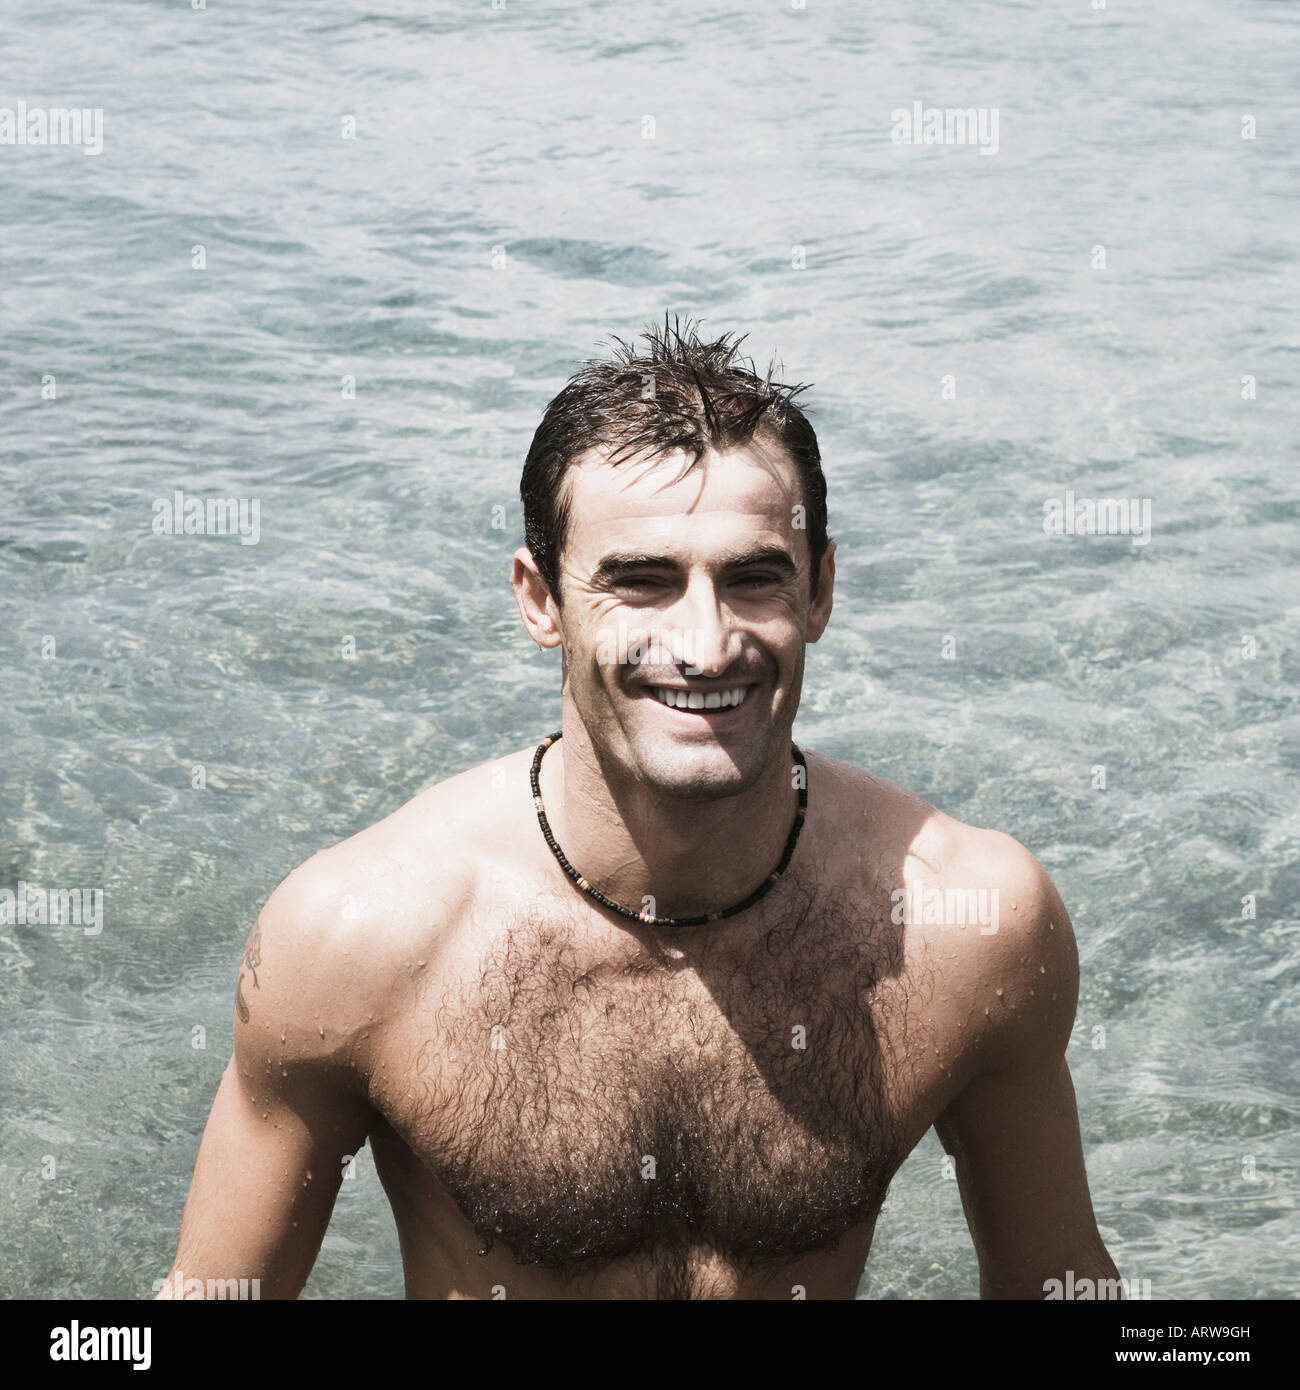 High angle view of a mid adult man standing in a river and smiling - Stock Image